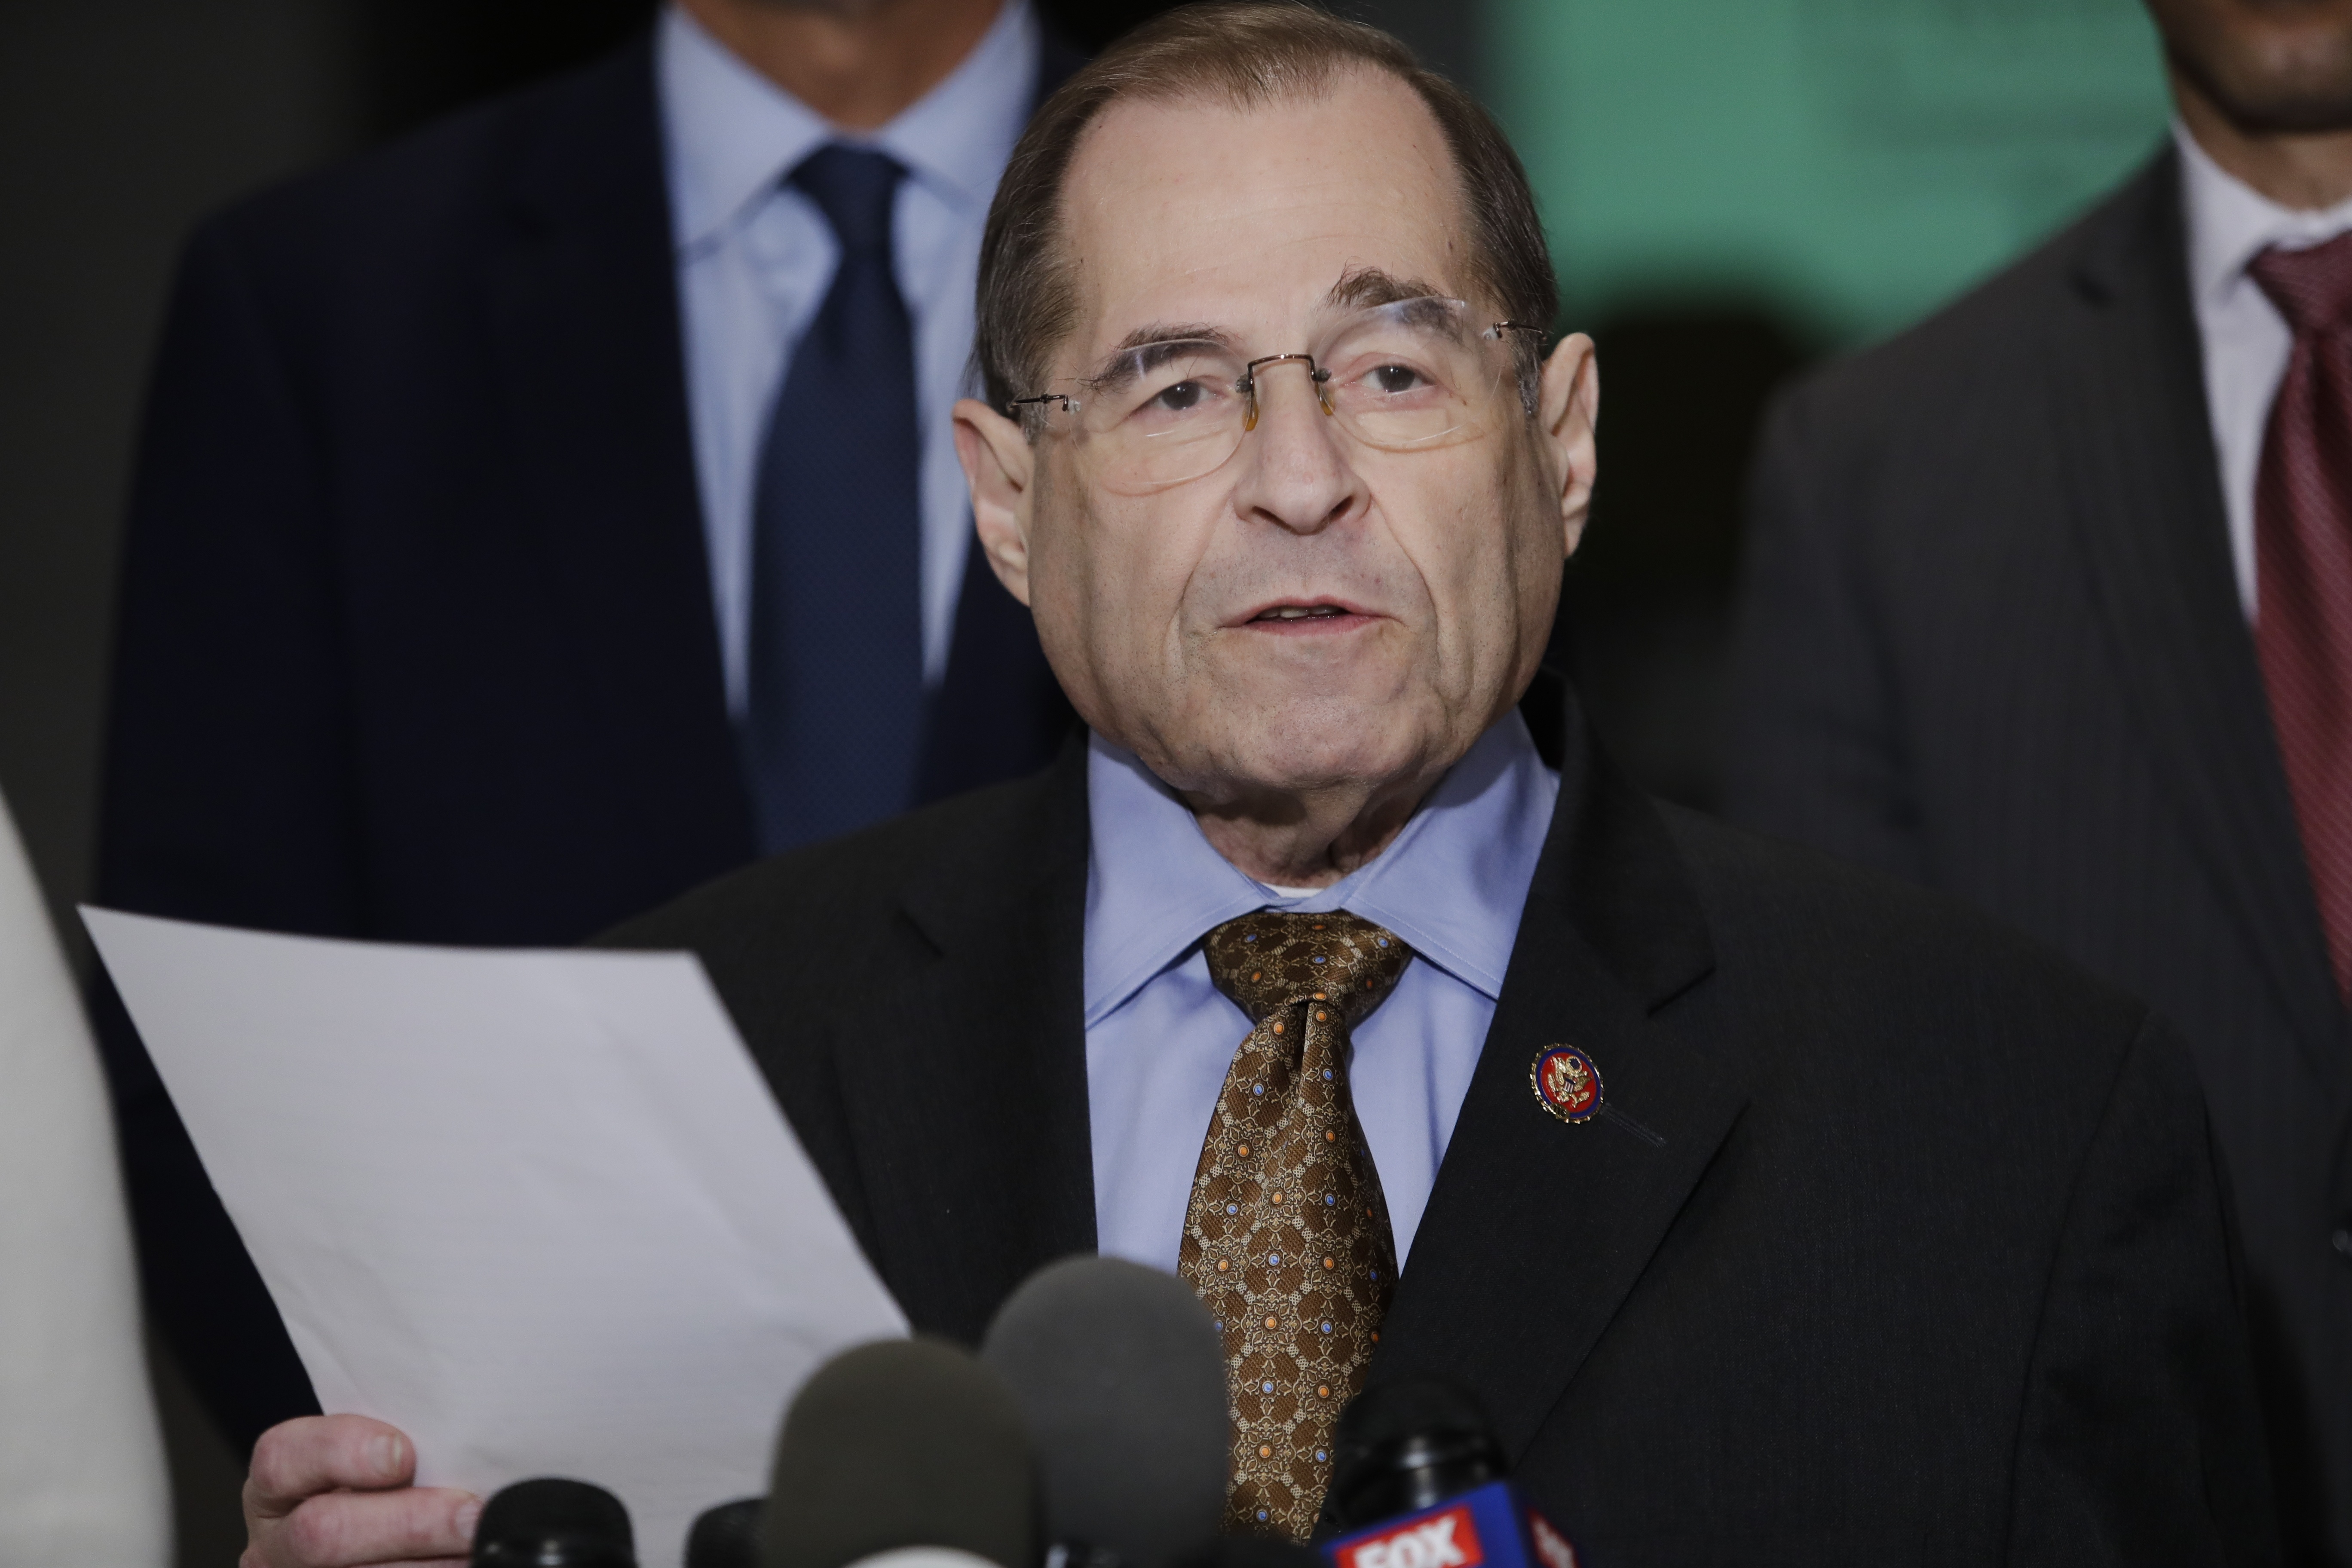 Top Dems say Mueller report shows Trump committed crimes